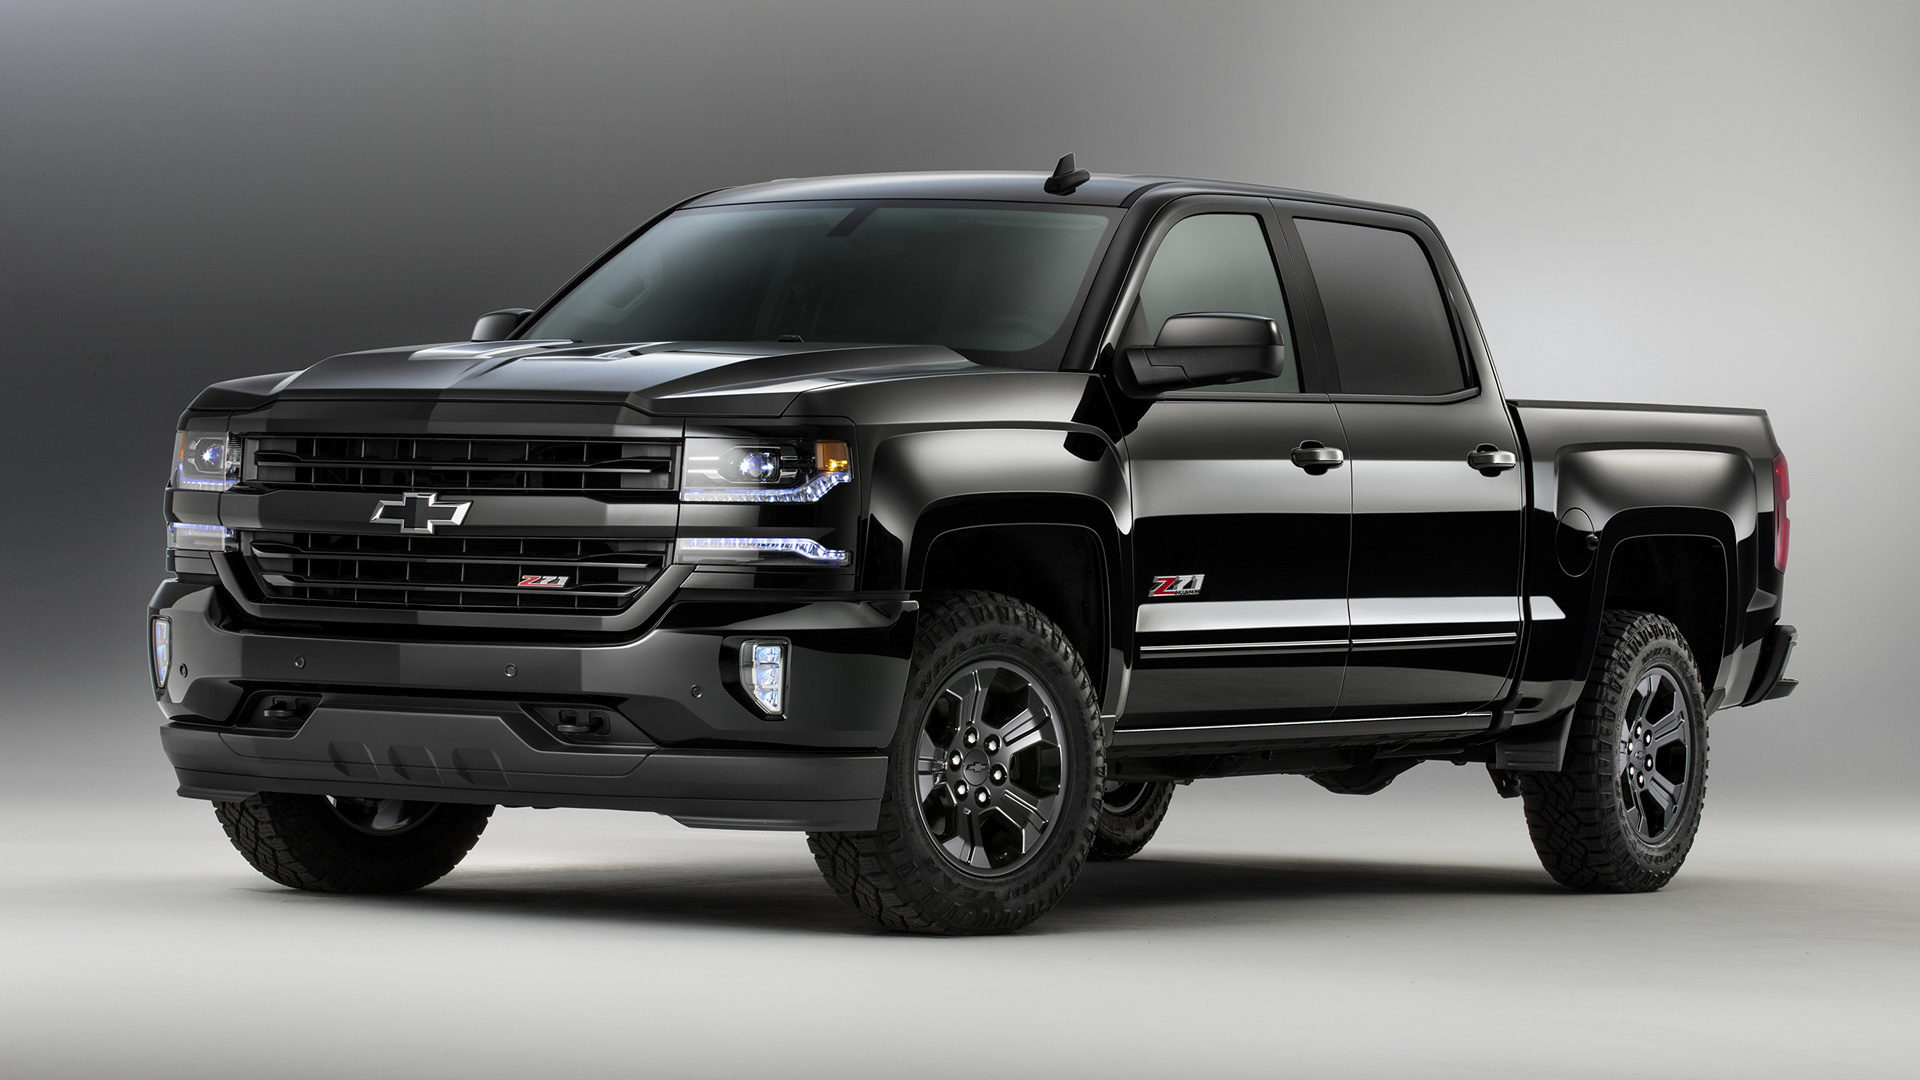 chevrolet silverado z71 midnight crew cab 2016 wallpapers and hd images car pixel. Black Bedroom Furniture Sets. Home Design Ideas